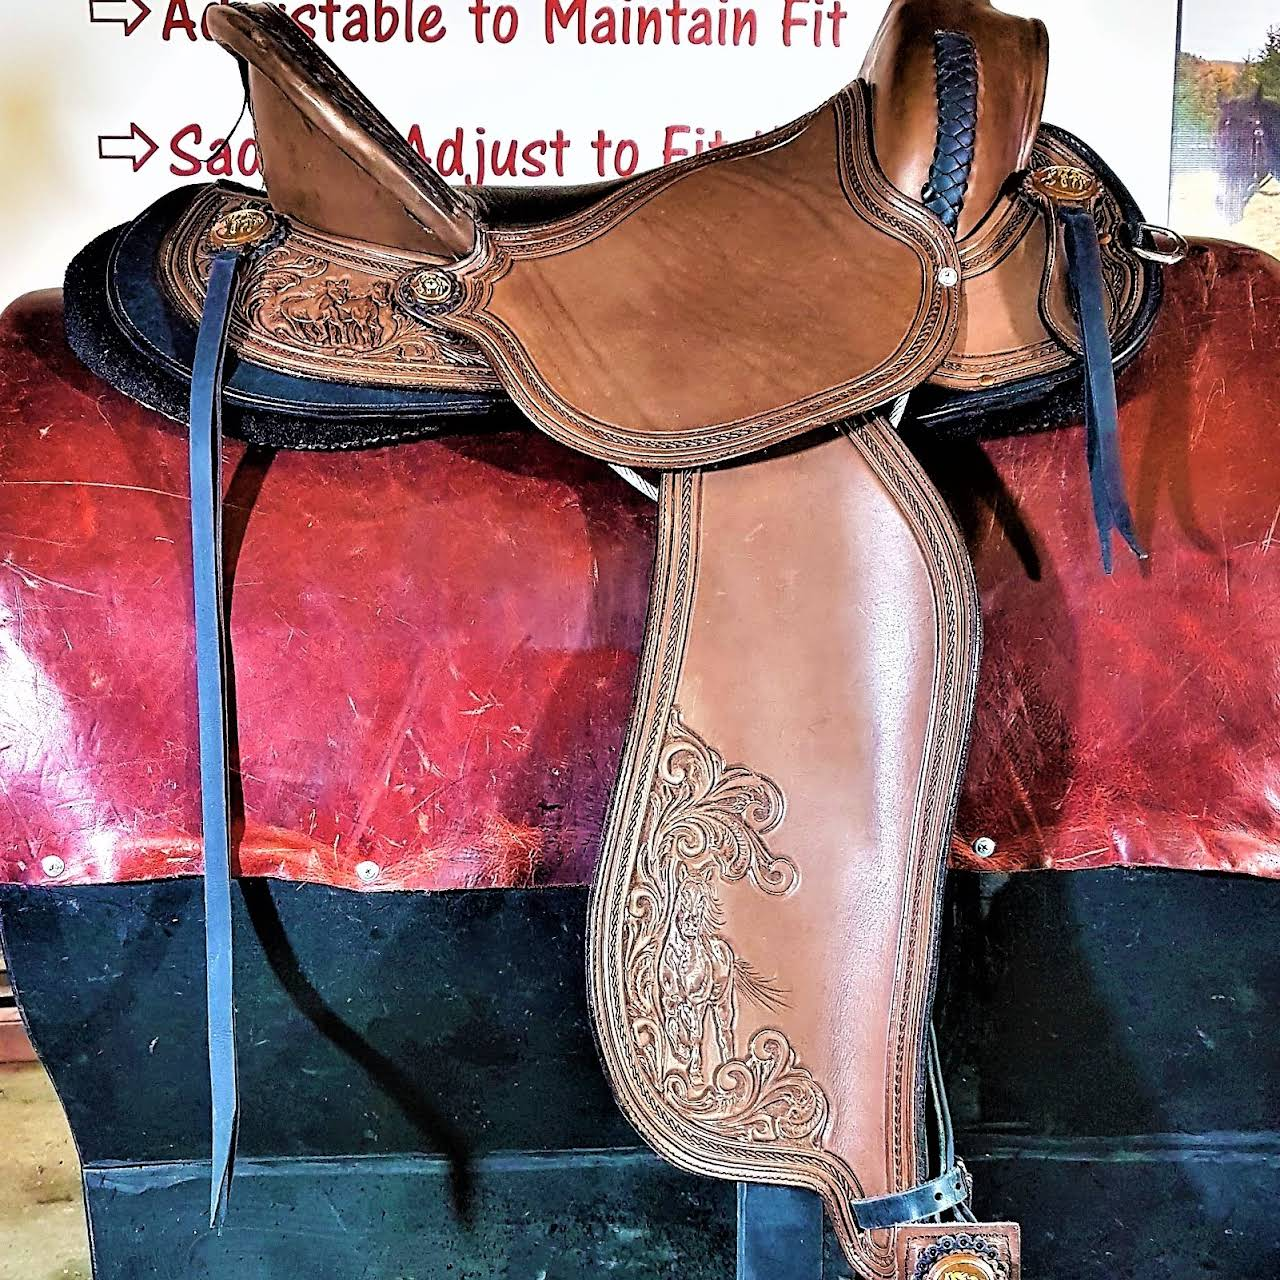 Easy Fit Saddles - Custom Saddle Maker in Millarville